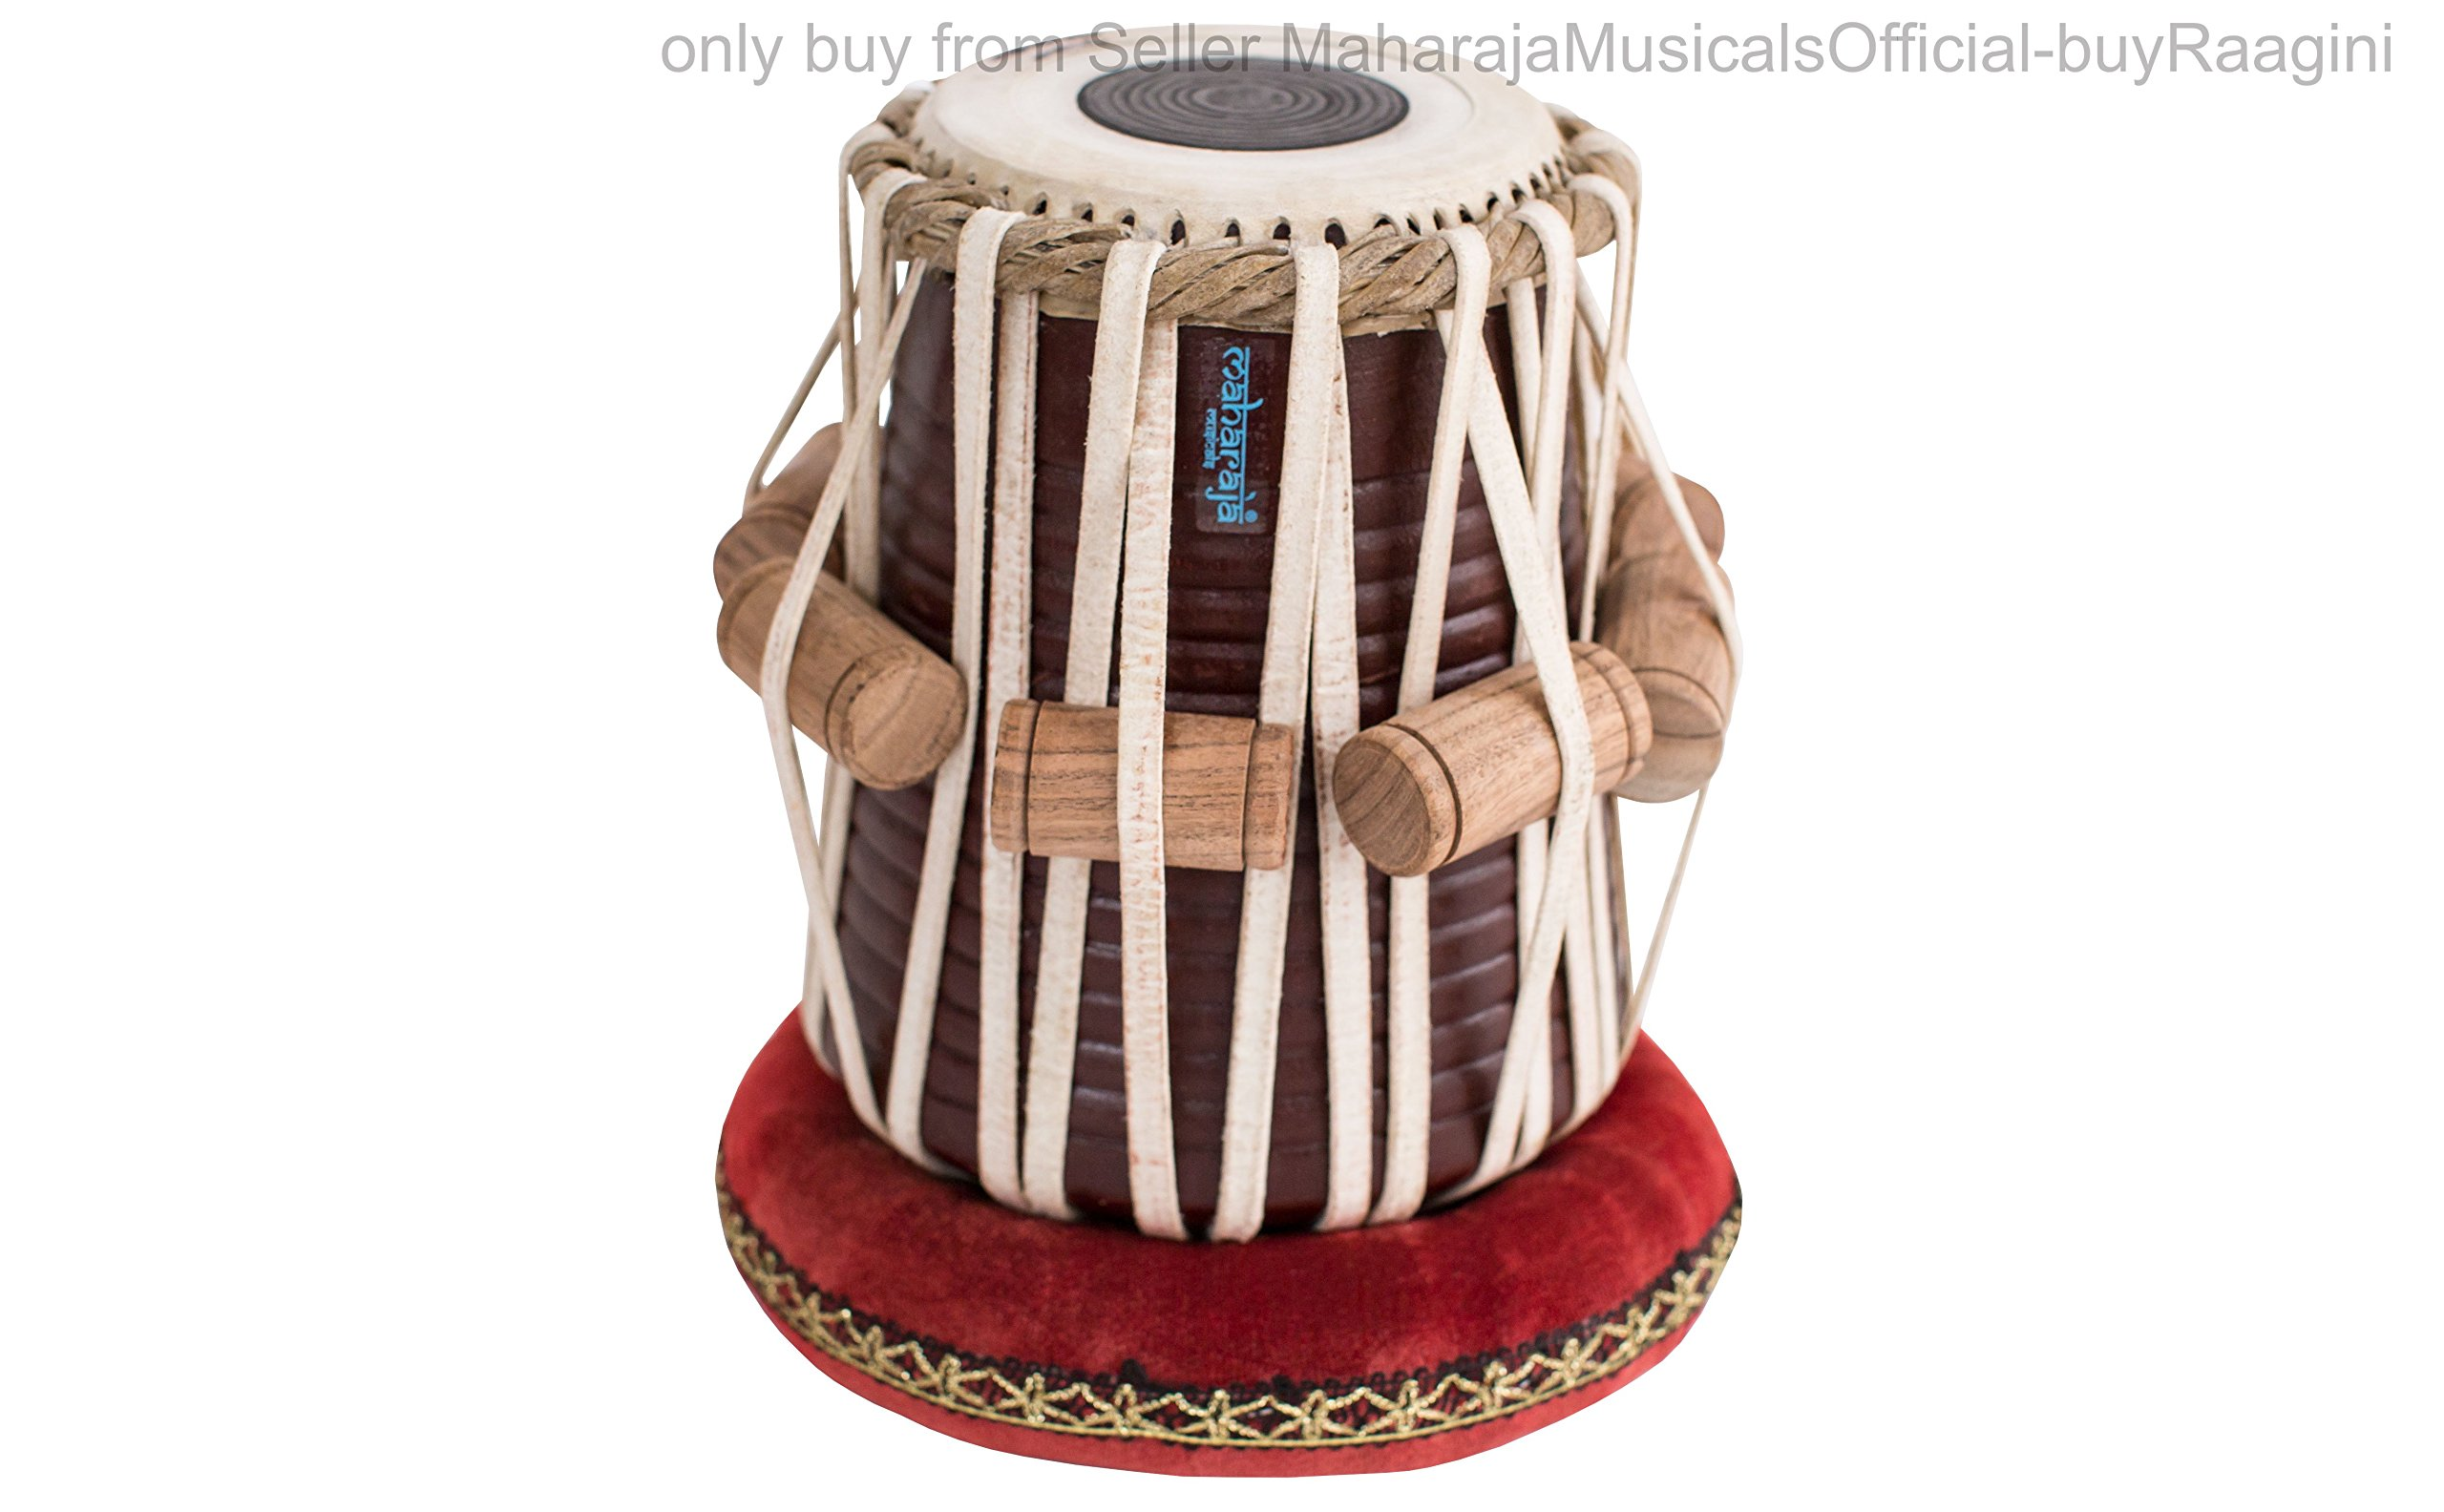 MAHARAJA Student Tabla Drum Set, Basic Tabla Set, Steel Bayan, Dayan with Book, Hammer, Cushions & Cover - Perfect Tablas for Students and Beginners on Budget (PDI-IB) Tabla Drums, Indian Hand Drums by Maharaja Musicals (Image #5)